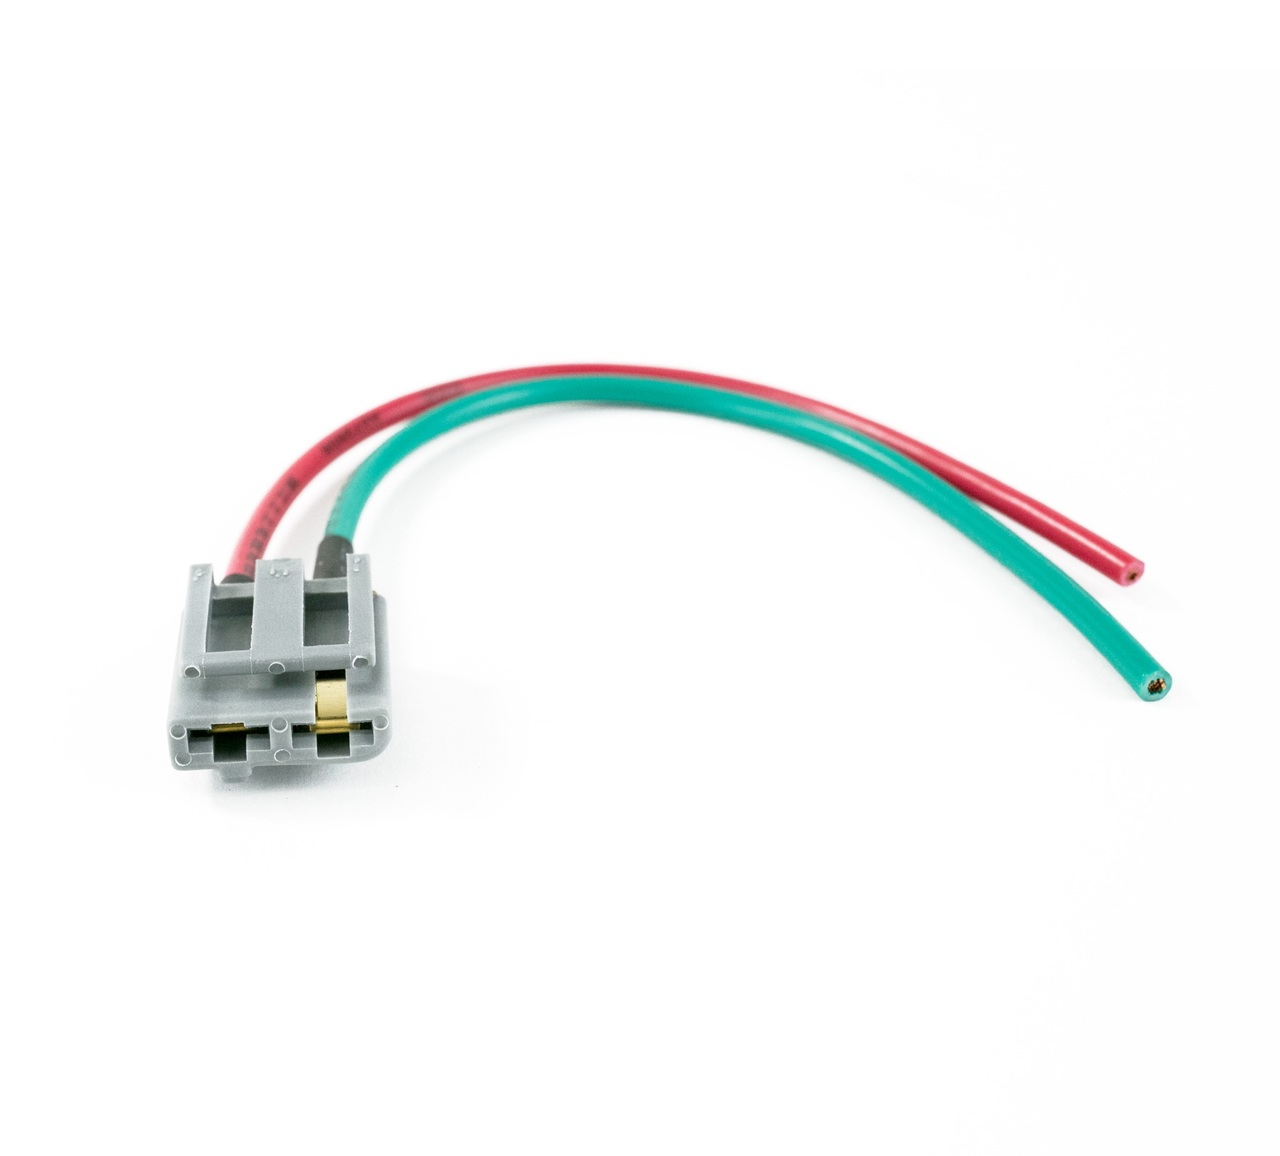 A-Team Performance HEI Distributor Wire Harness Pigtail Dual 12v Power & Tach Connectors 170072